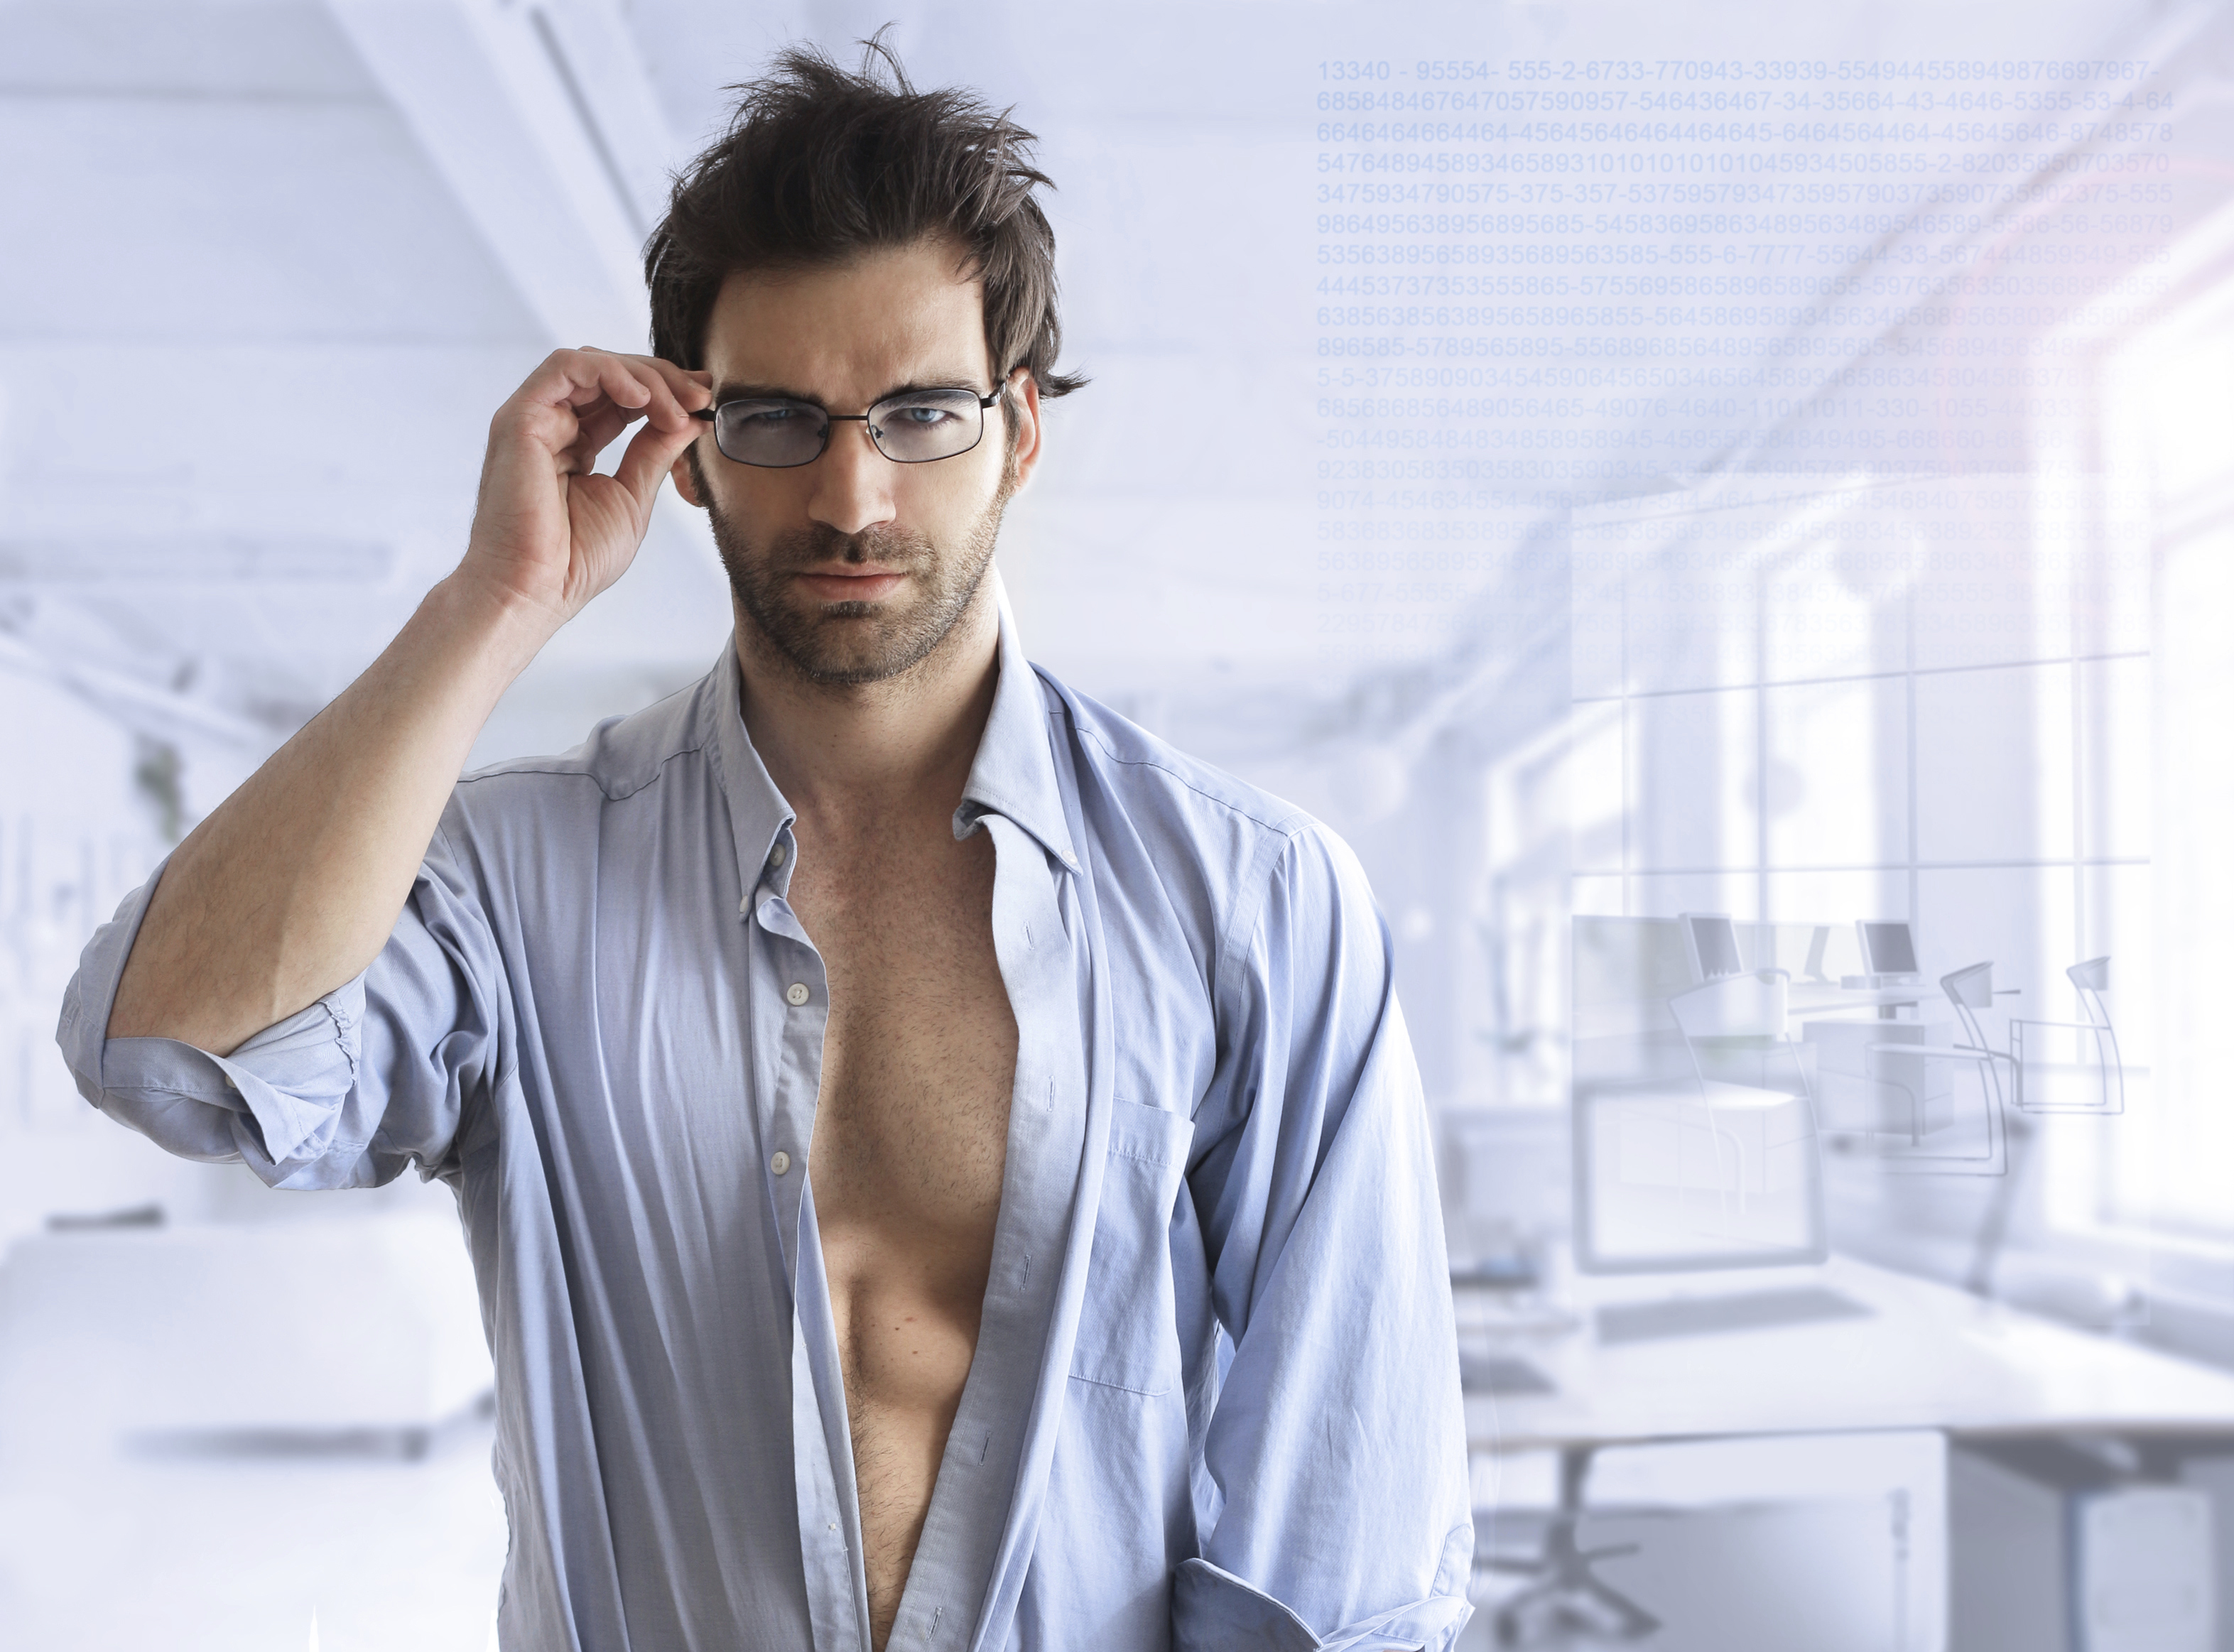 Sexy business guy